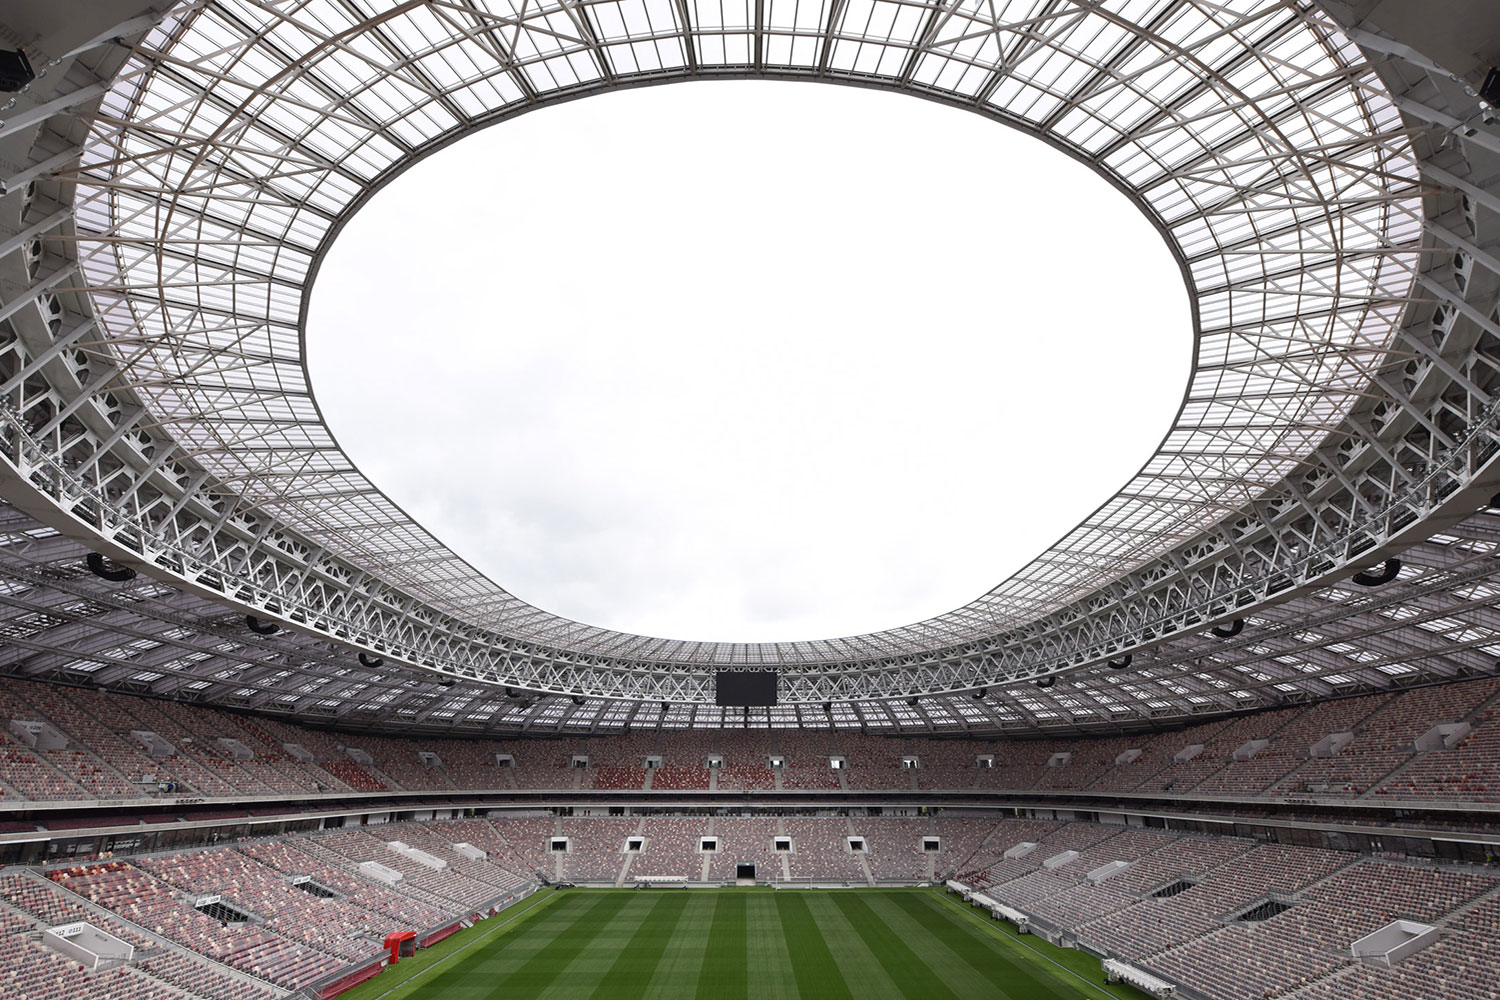 FIFA Russia 2018 Lushniki Stadium in Moscow. ADA-AMC and WSDG developed computer models and simulation in order to achieve a great sound distribution throughout the stadium. Aerial view.